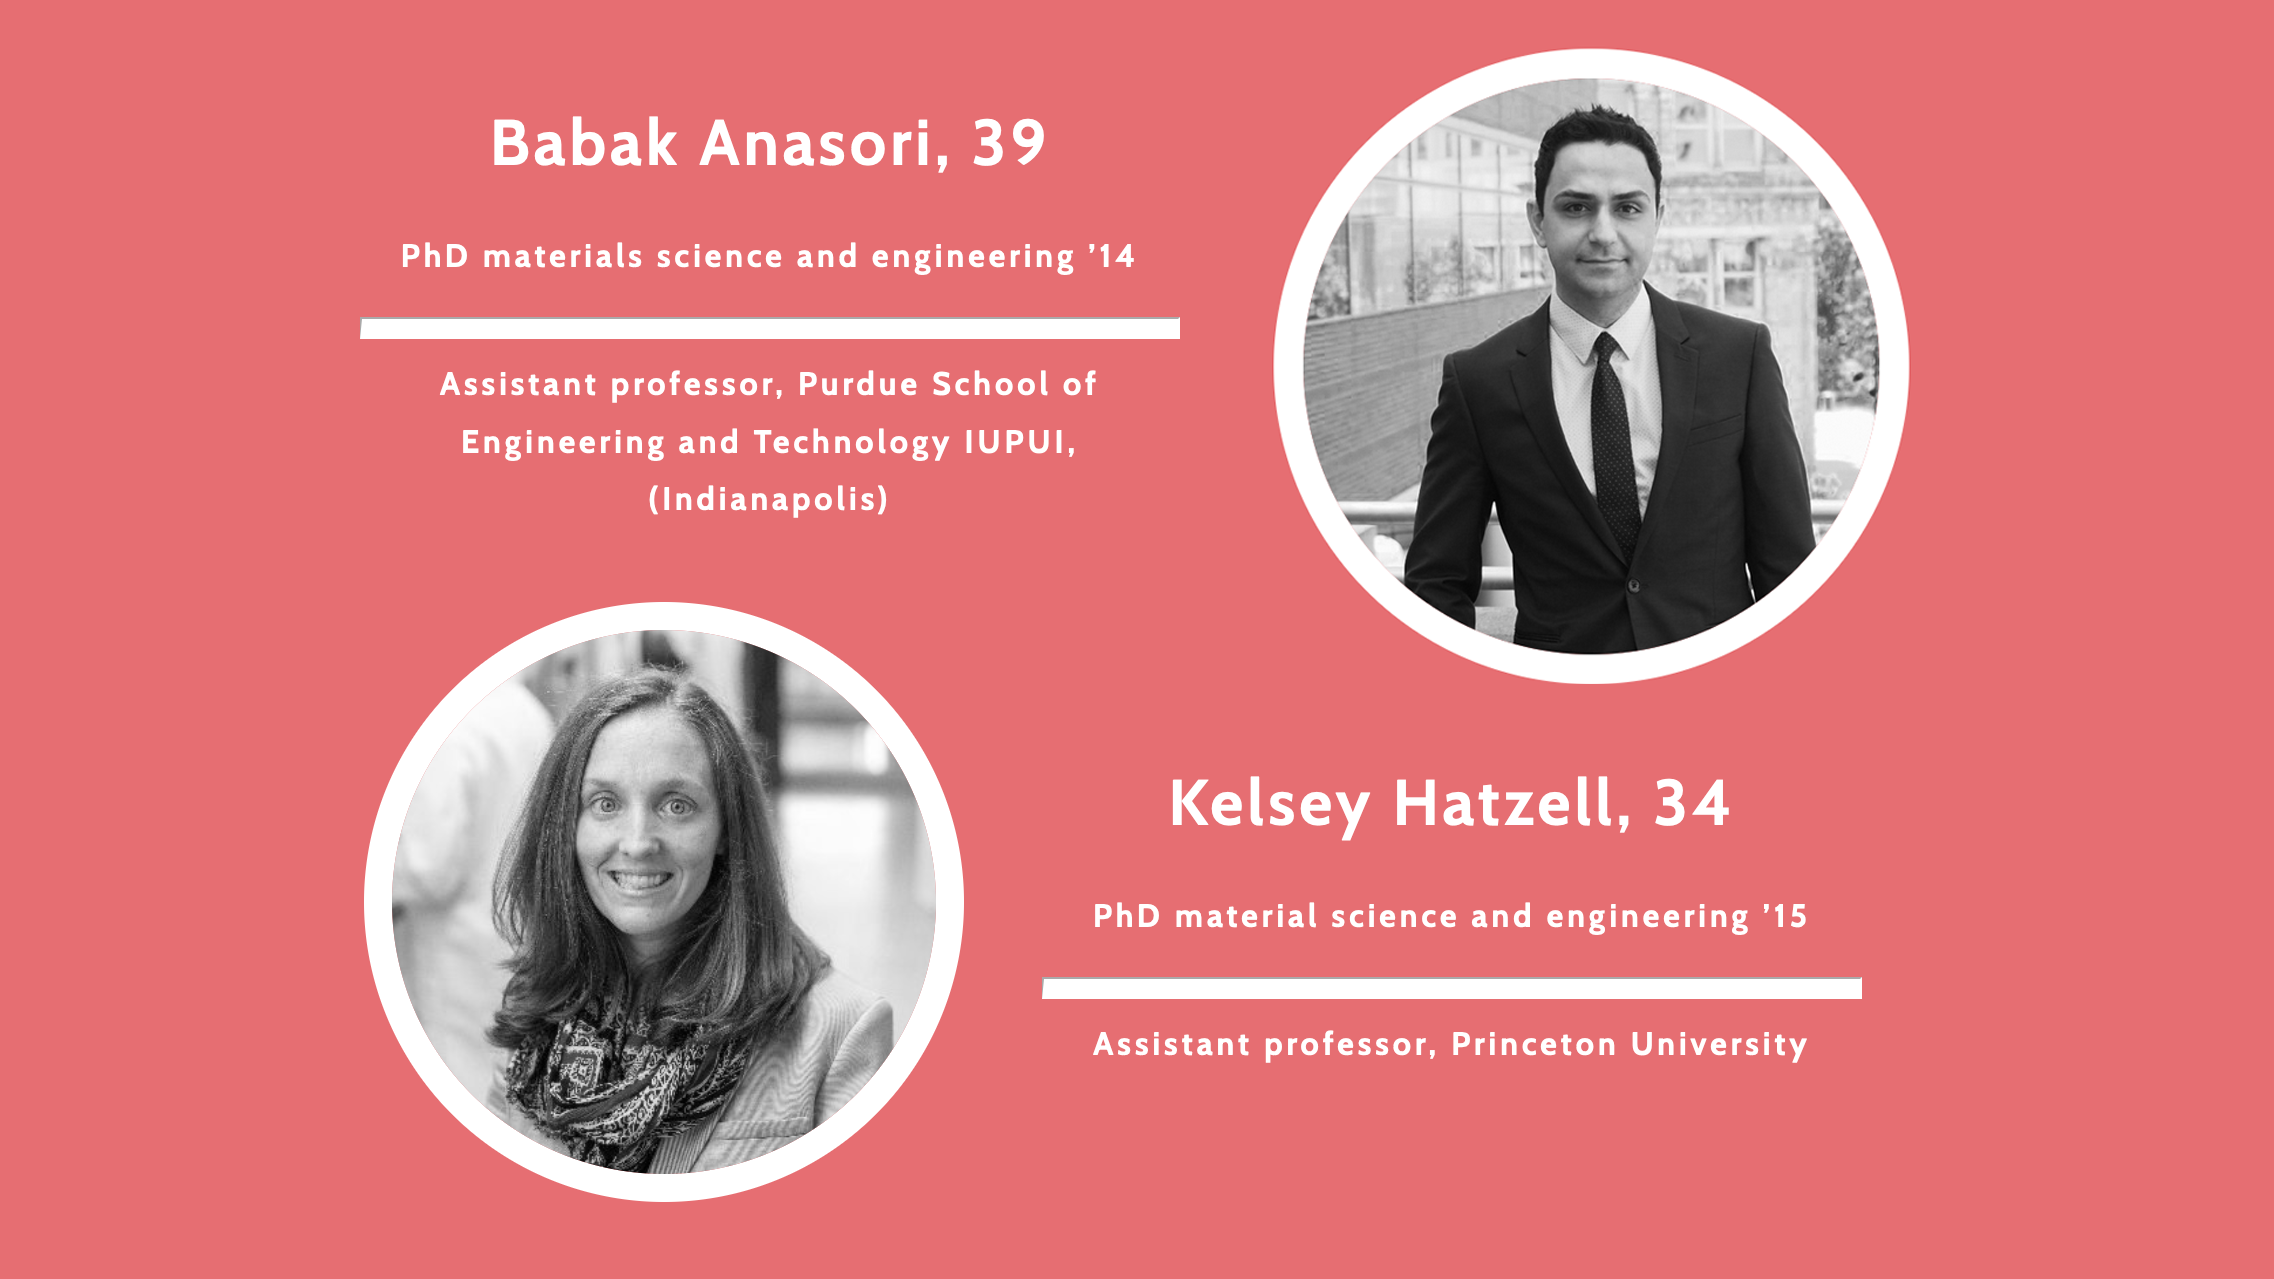 Our Alumni, Kelsey Hatzell and Babak Anasori, Were Recognized Among the Drexel 40 Under 40 Program This Year